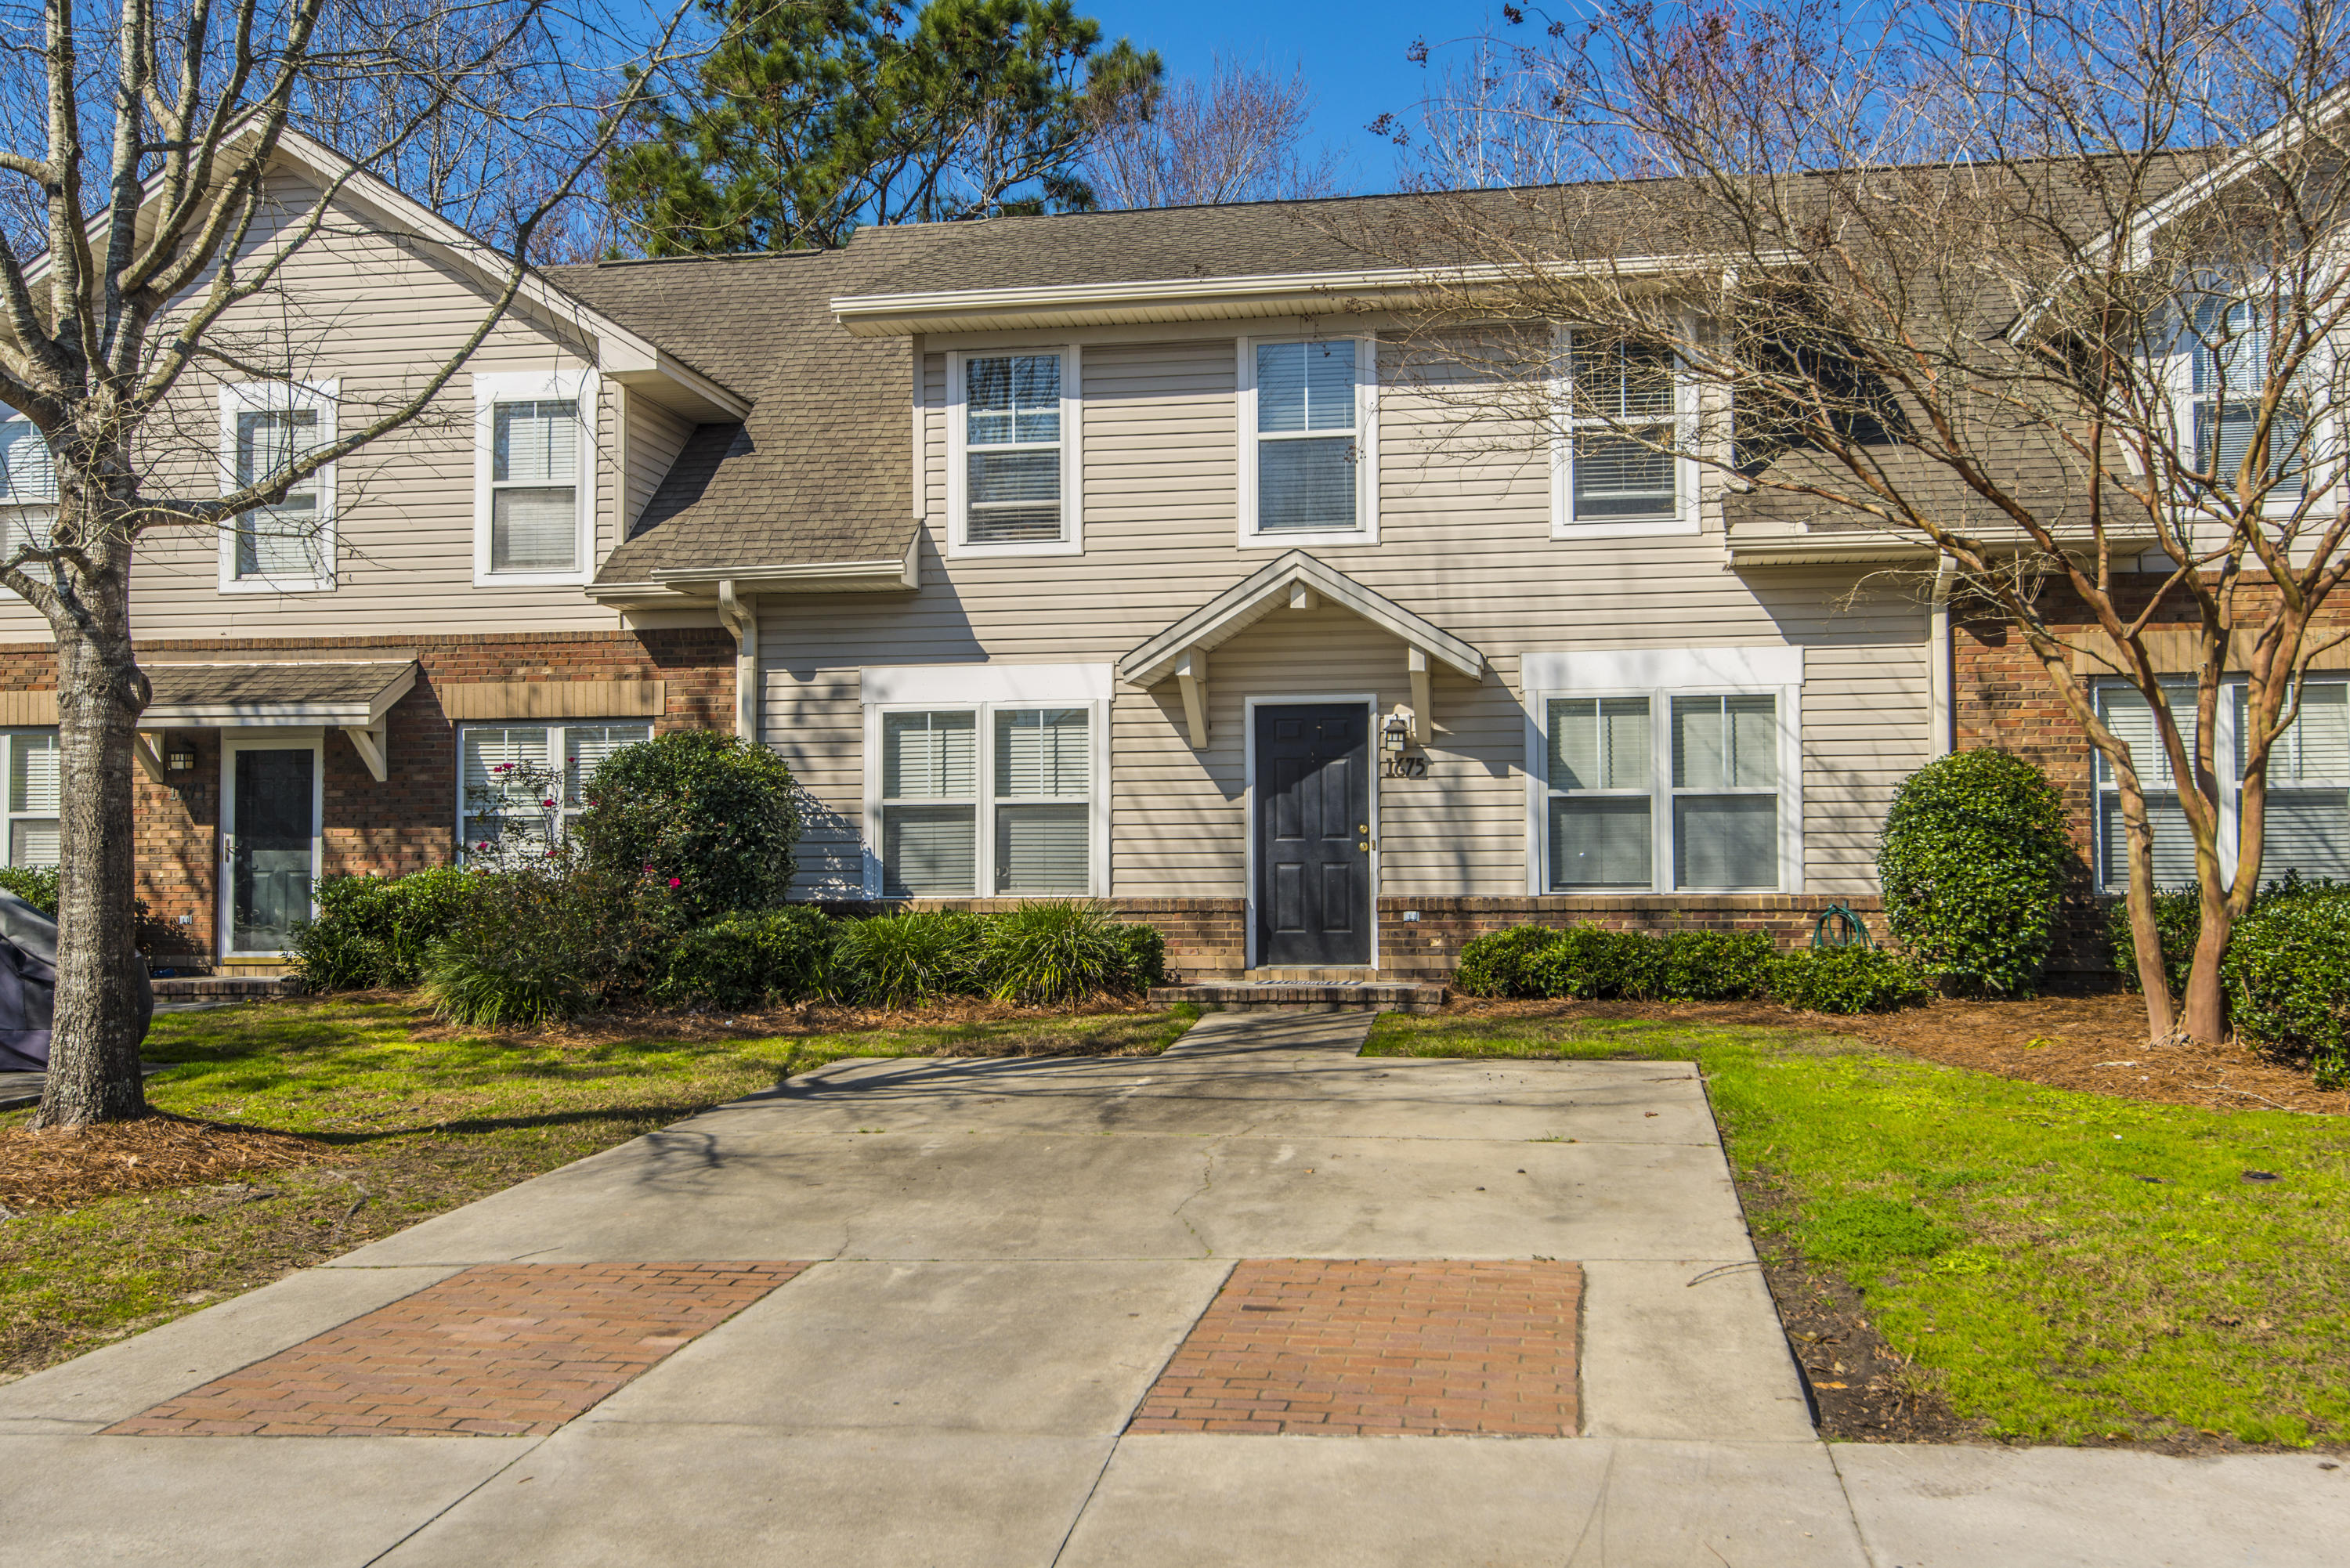 The Reserve at Wando East Homes For Sale - 1675 Lauda, Mount Pleasant, SC - 0